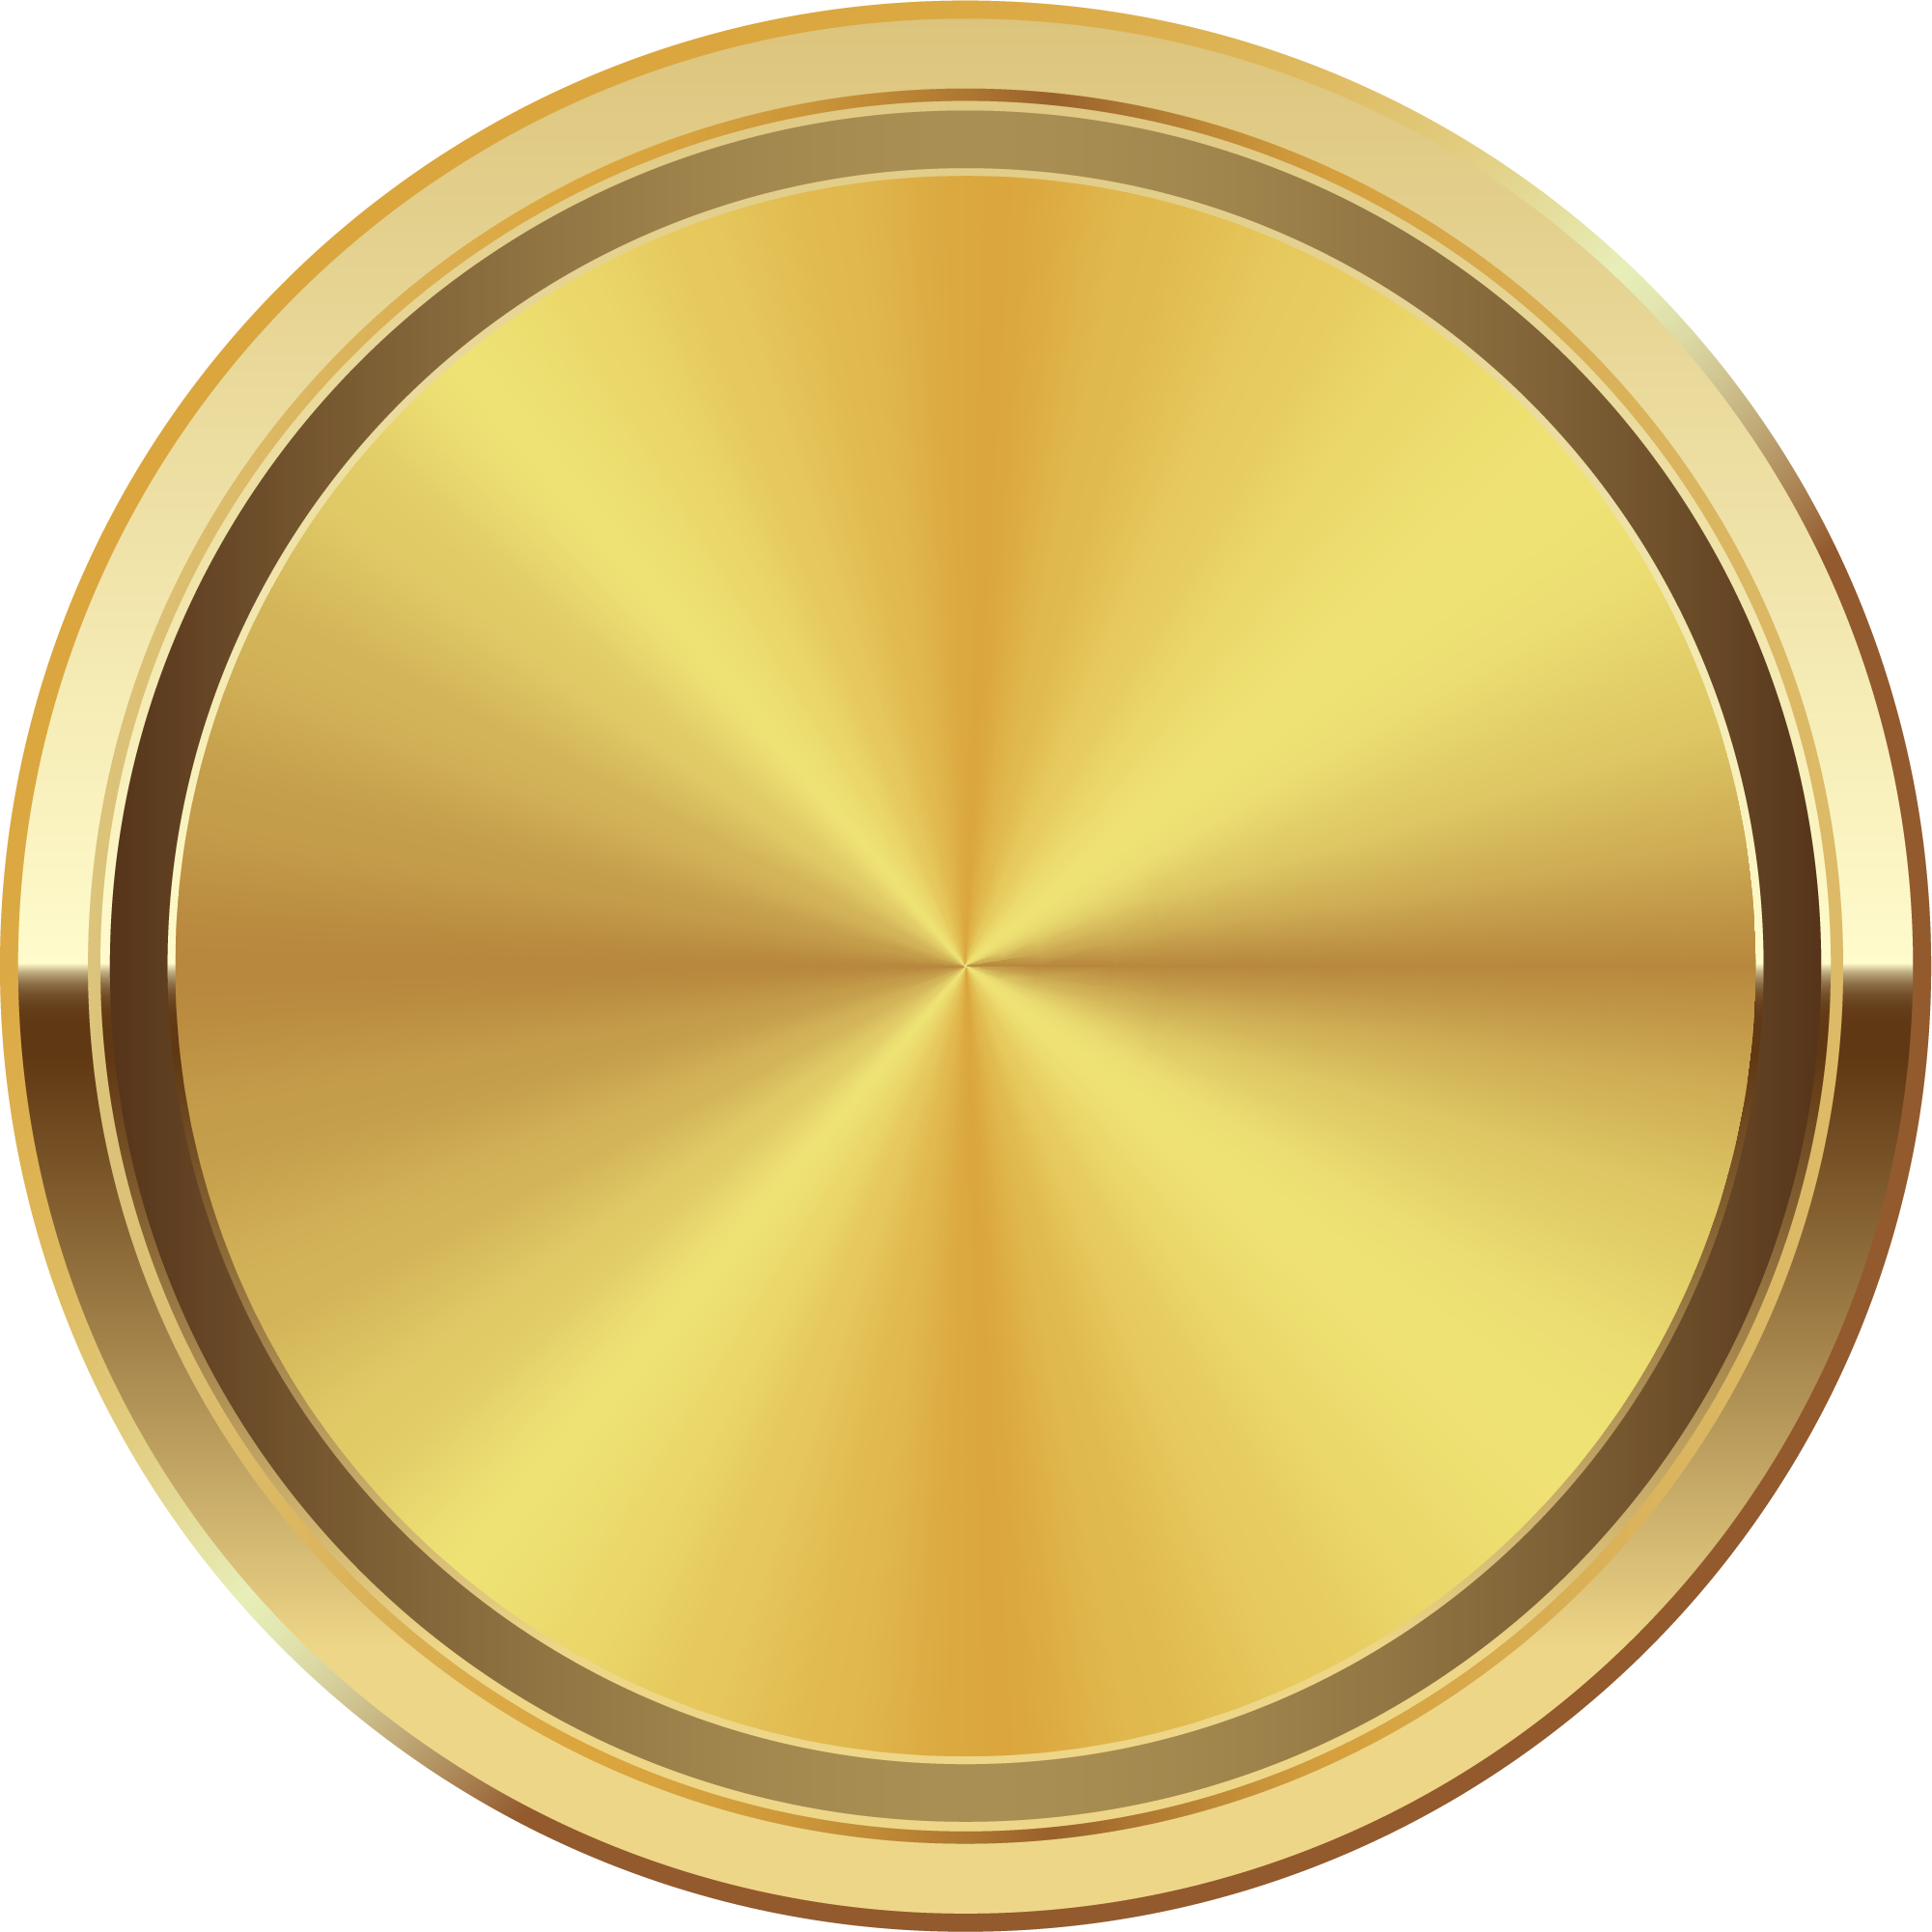 Gold circle png clipart images gallery for free download.